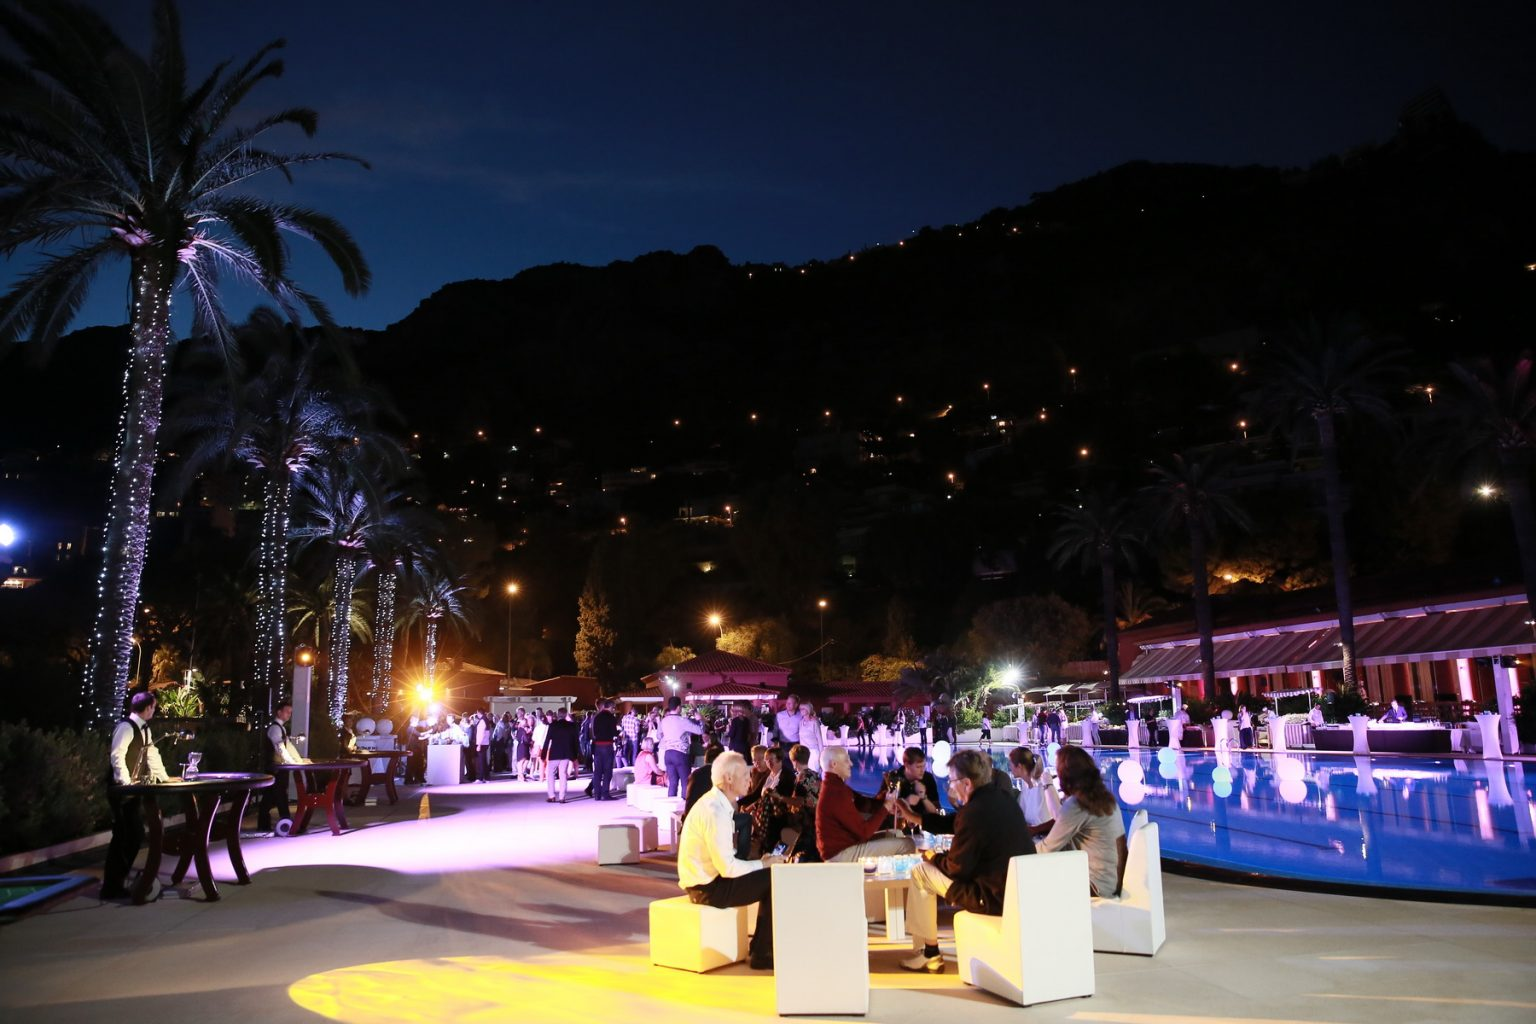 Le Deck Monte Carlo Pool Evening 26 - Le Deck Monte Carlo Pool Evening